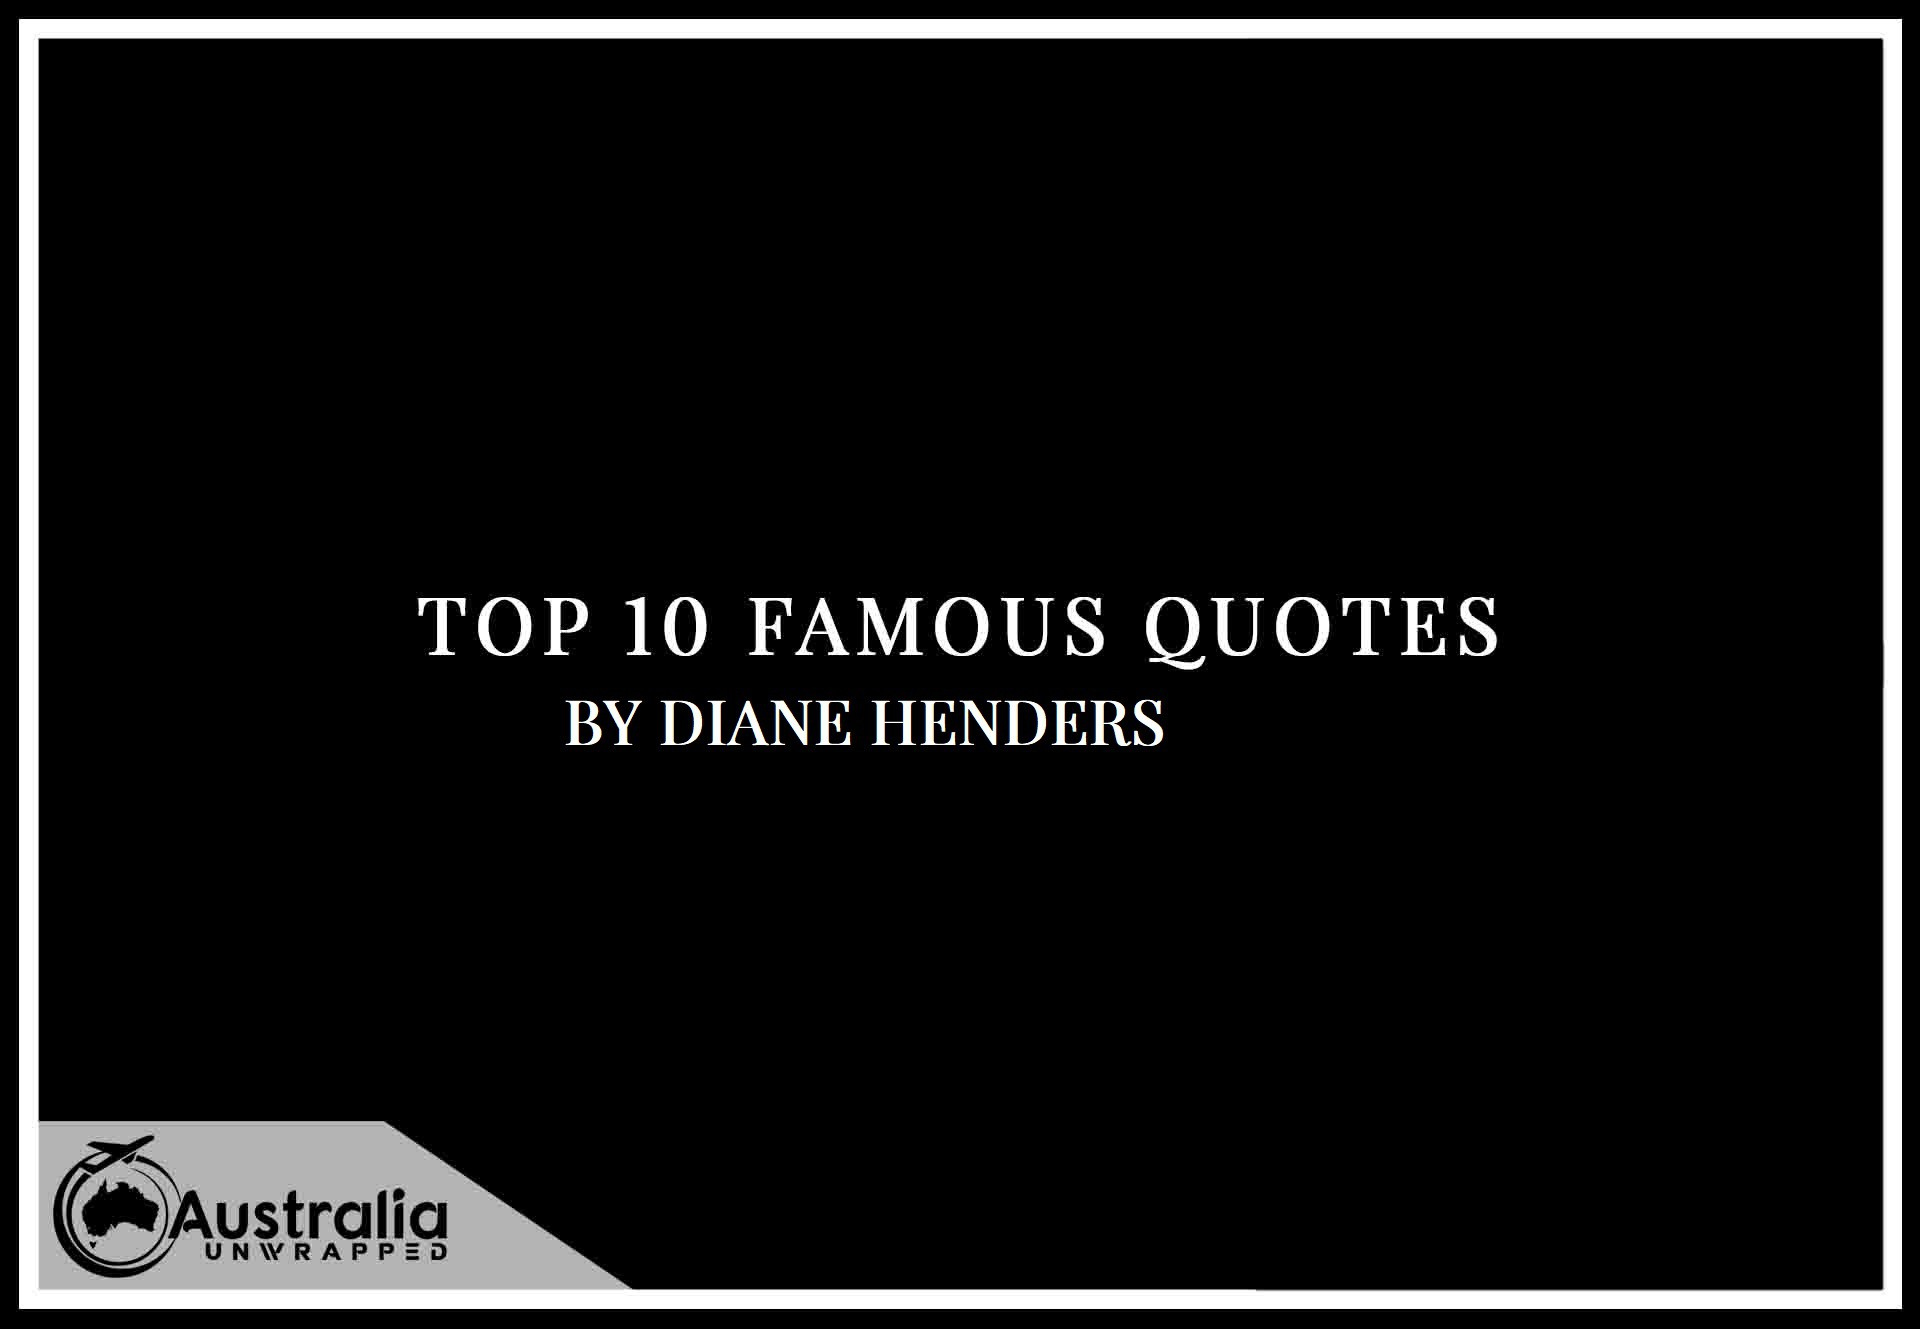 Top 10 Famous Quotes by Author Diane Henders